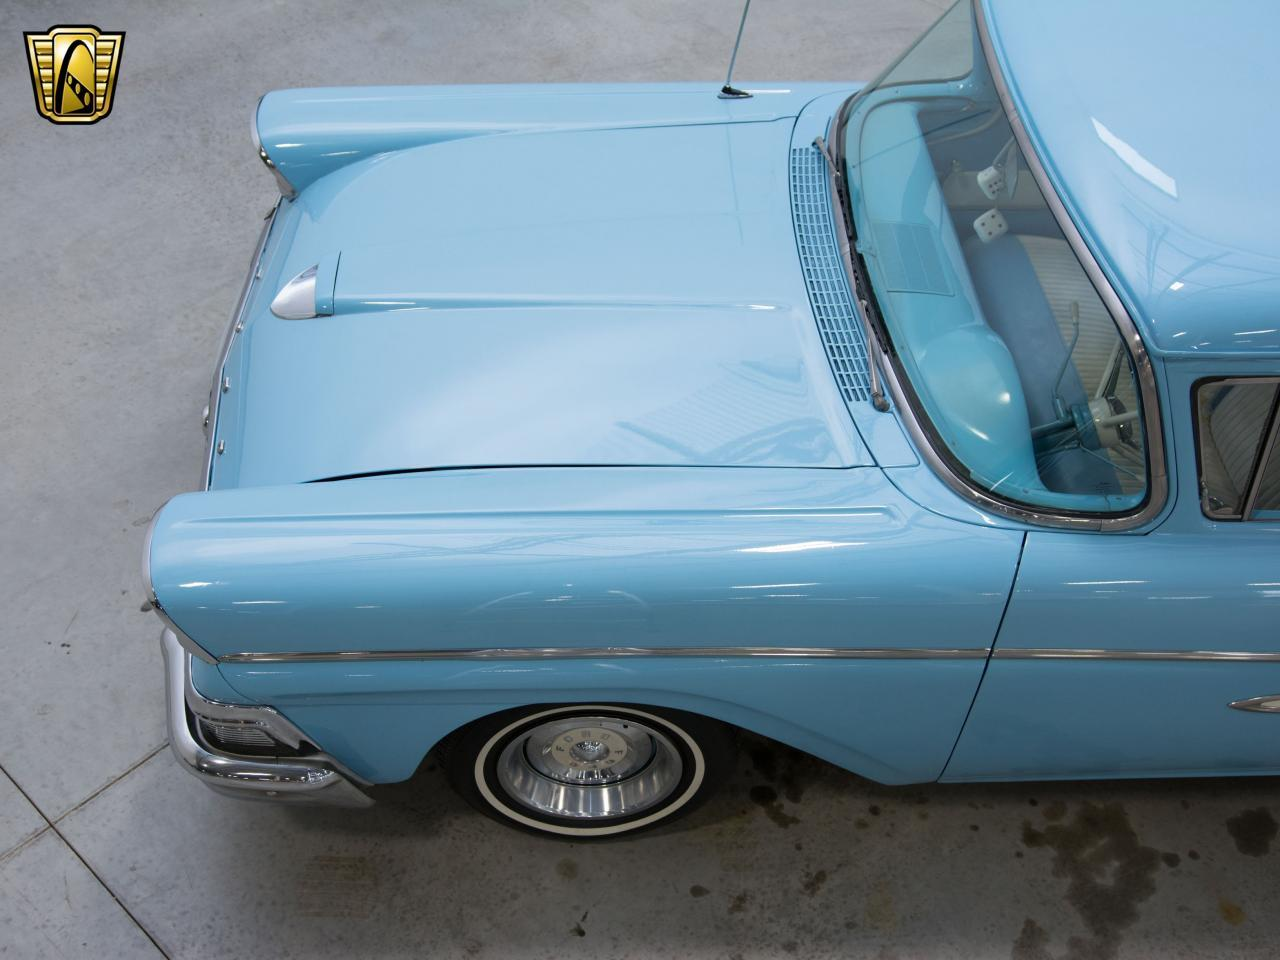 Large Picture of '58 Ford Ranchero located in Kenosha Wisconsin - $20,995.00 - KH0V